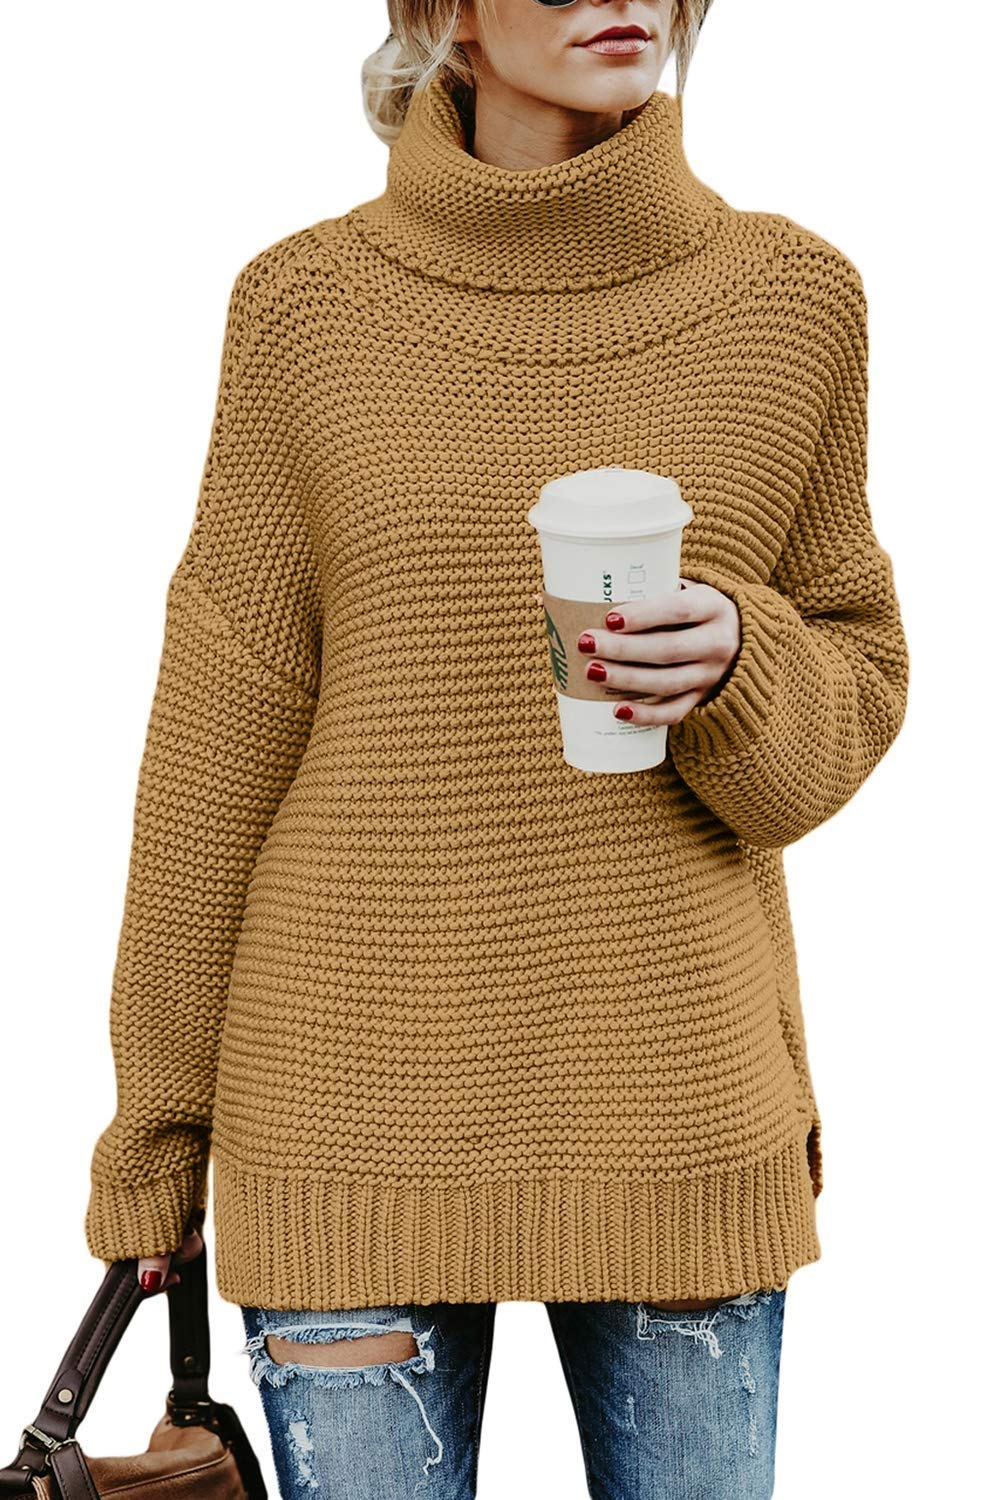 ANFTFH Chunky Knit Sweaters for Women Turtleneck Long Sleeve Pullover Tops